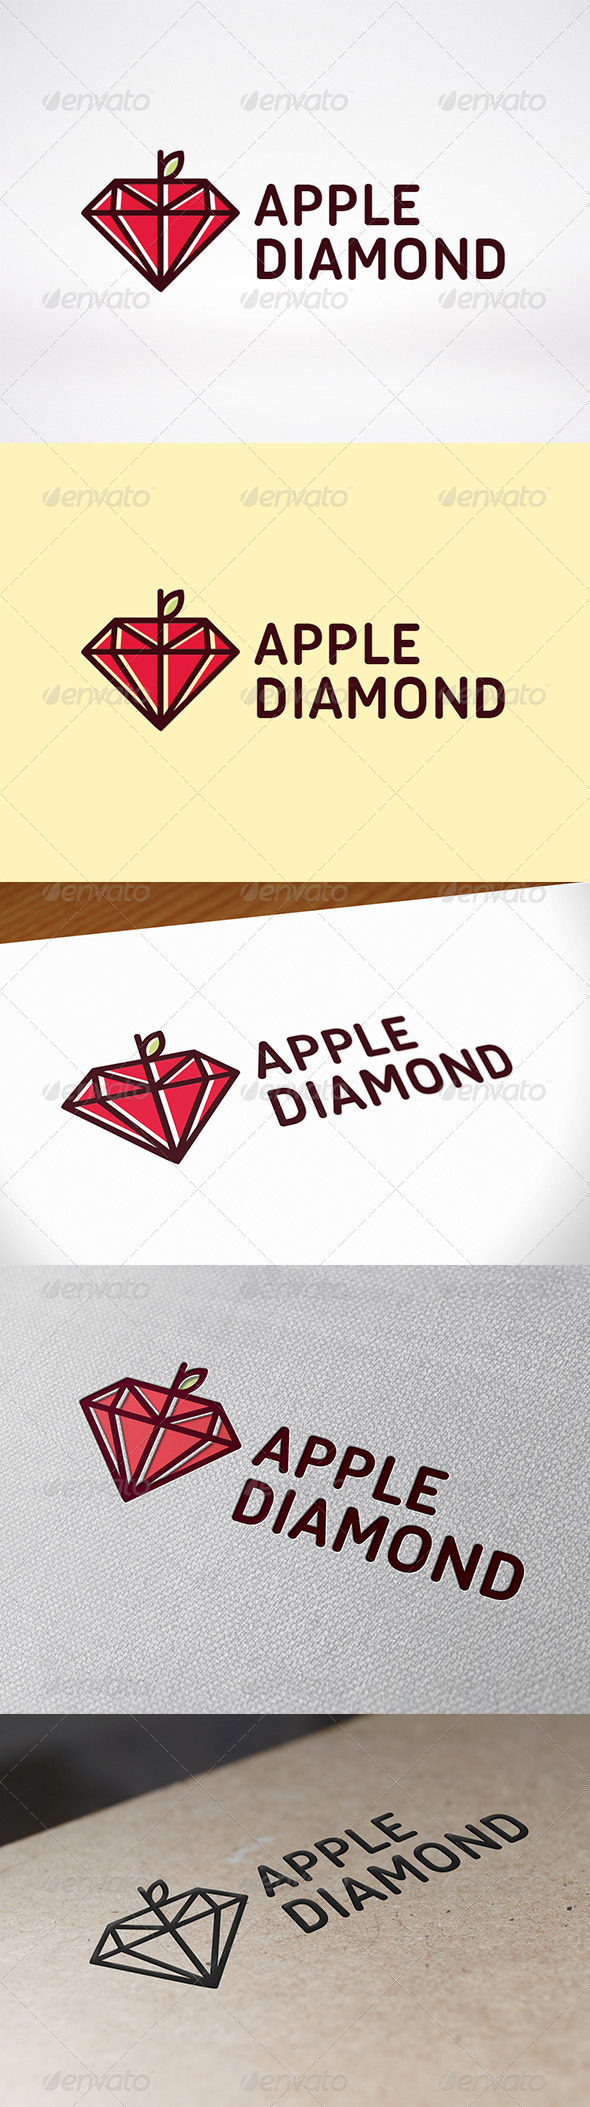 Apple Diamond Logo Template - Food Logo Templates